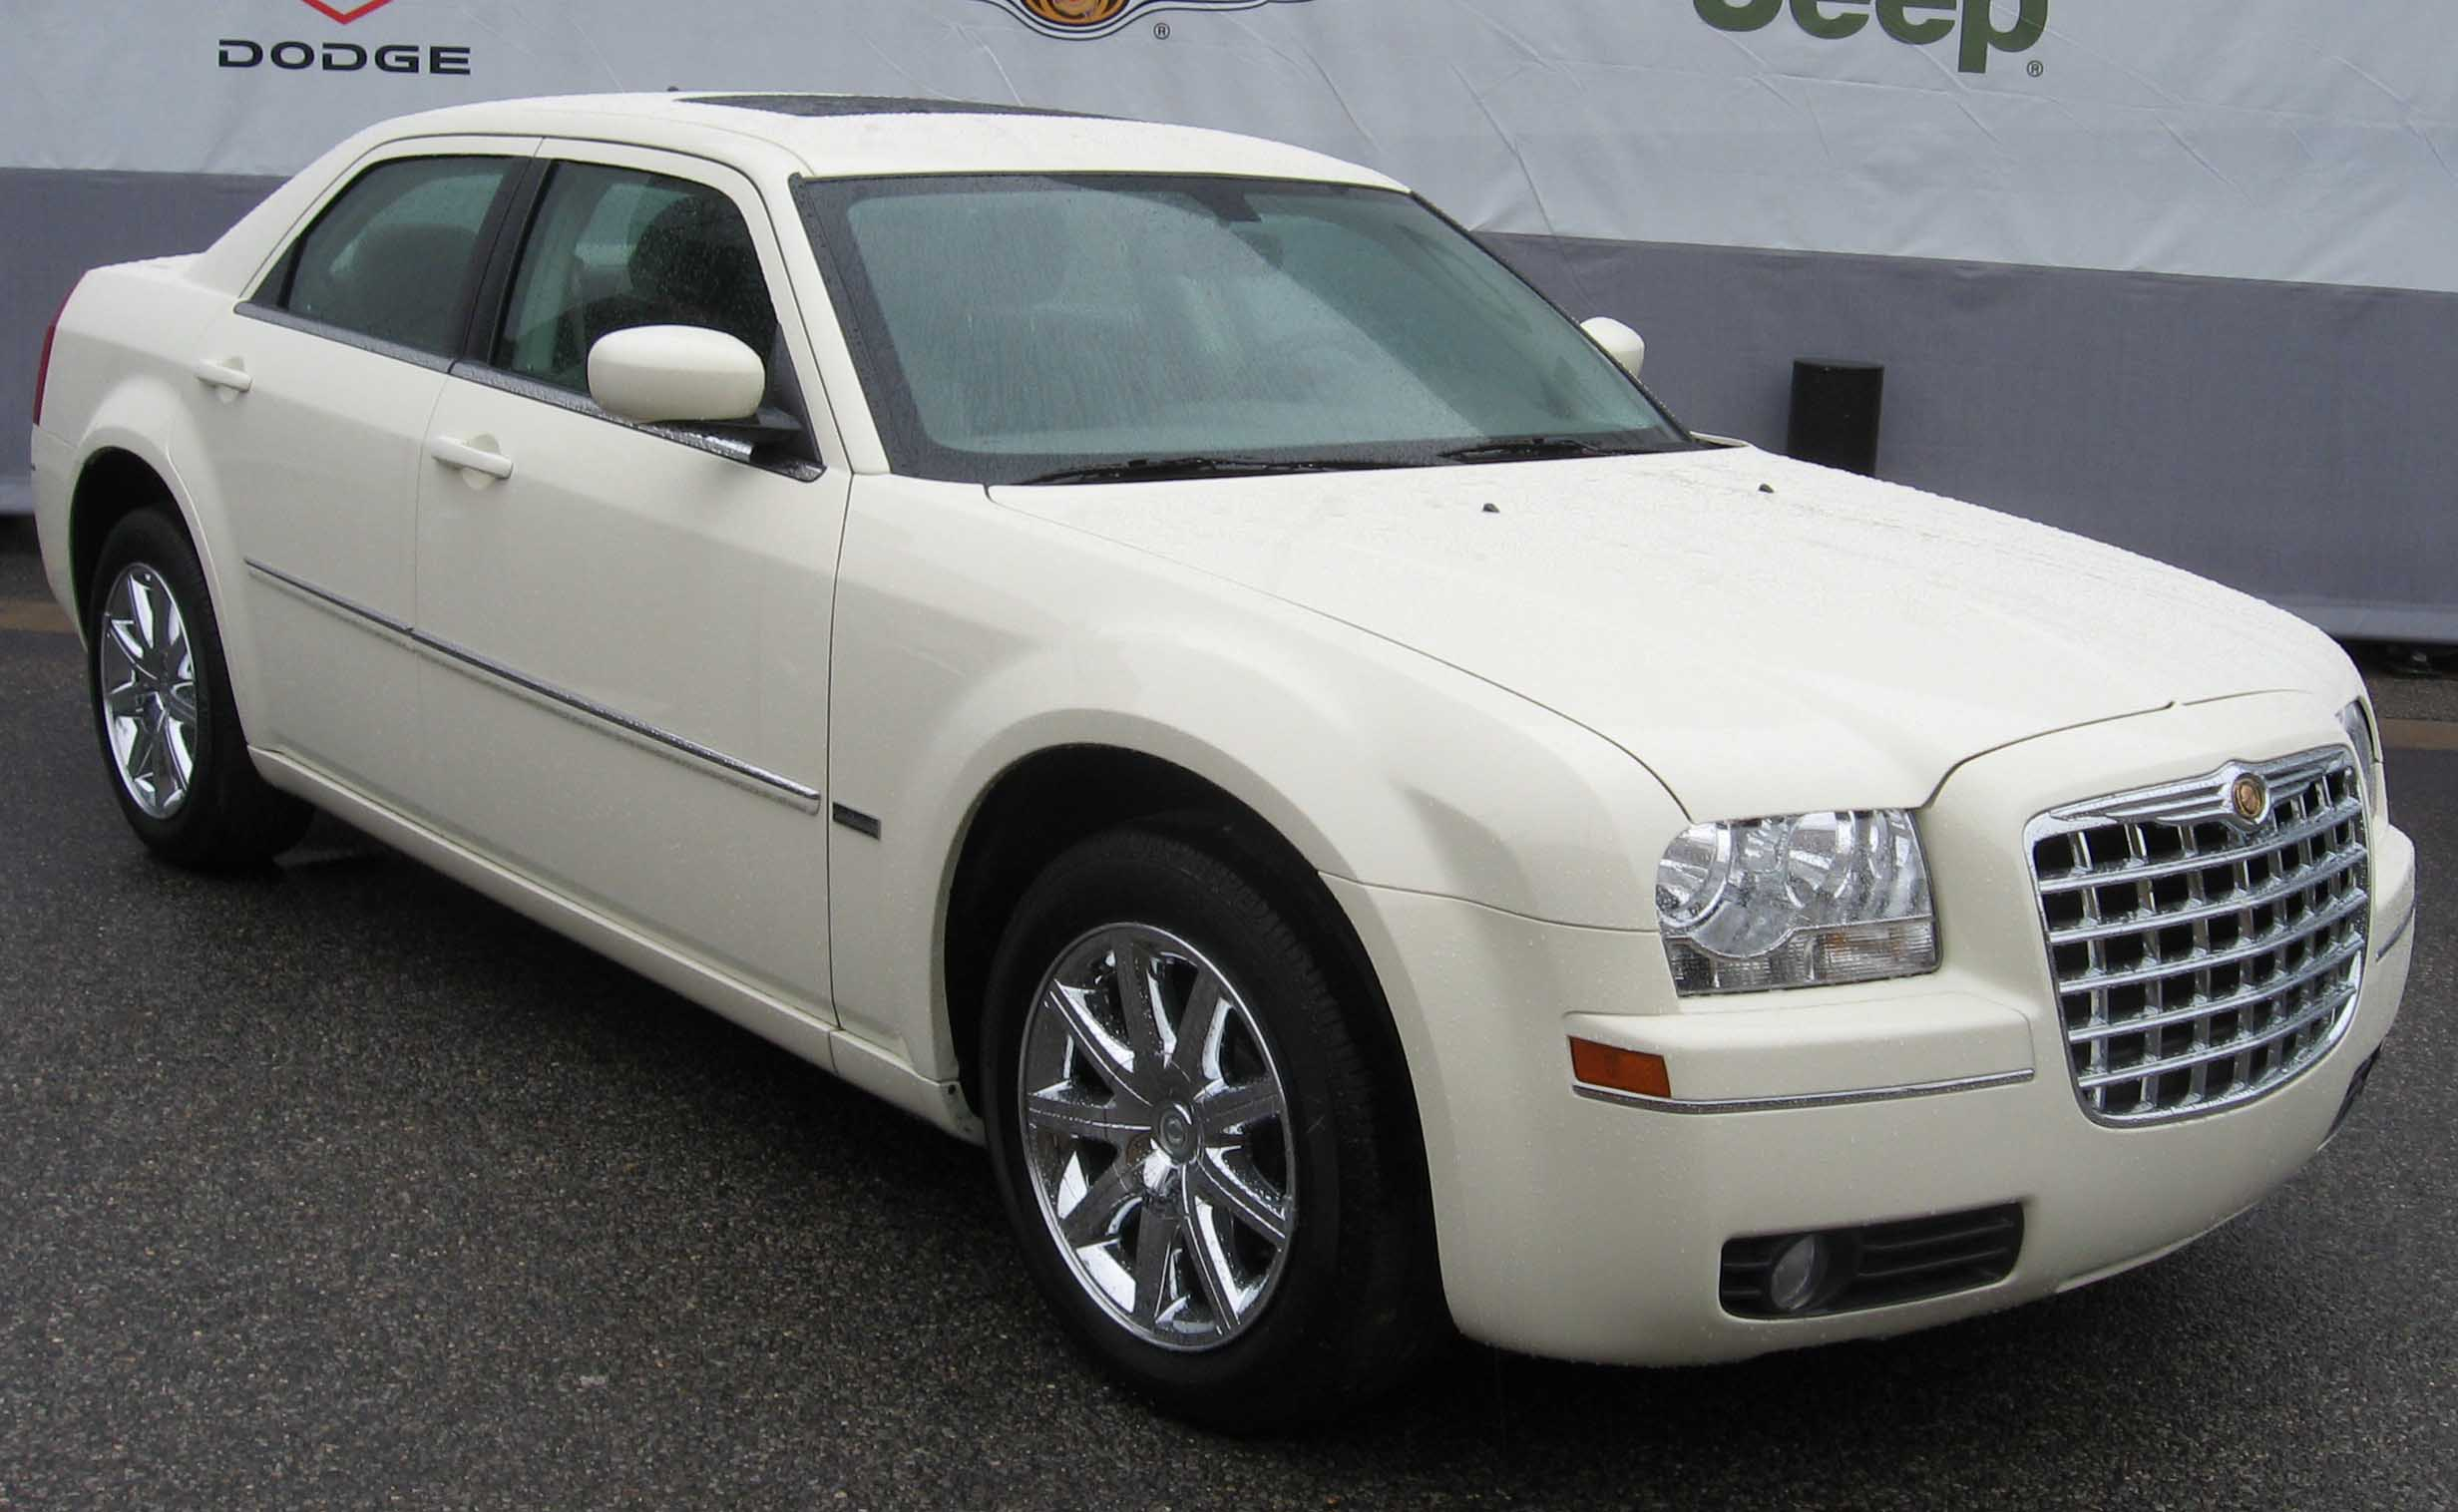 Cars for Sale Near Me Under 300 Best Of Celebrity Car Collections Cars Owned by Dr Dre Celebrity Cars Dubai